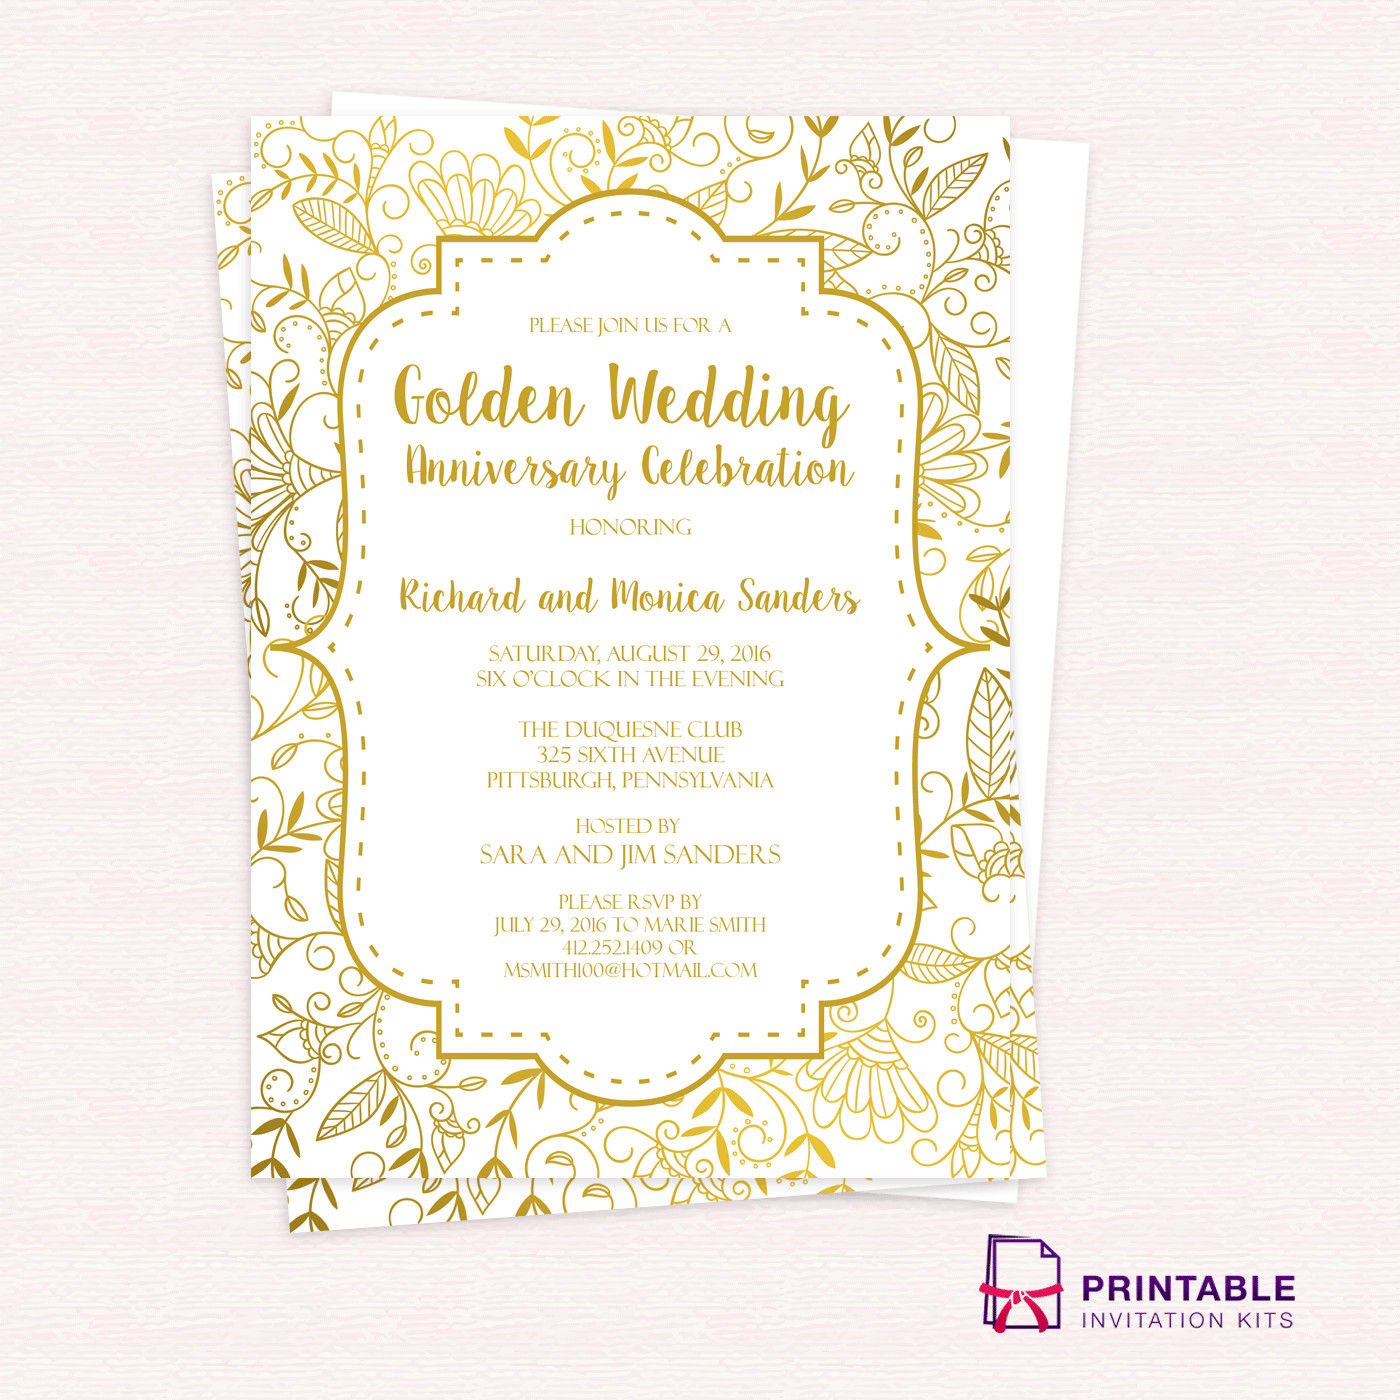 50th Anniversary Invitations Templates Golden Wedding Anniversary Invitation Template